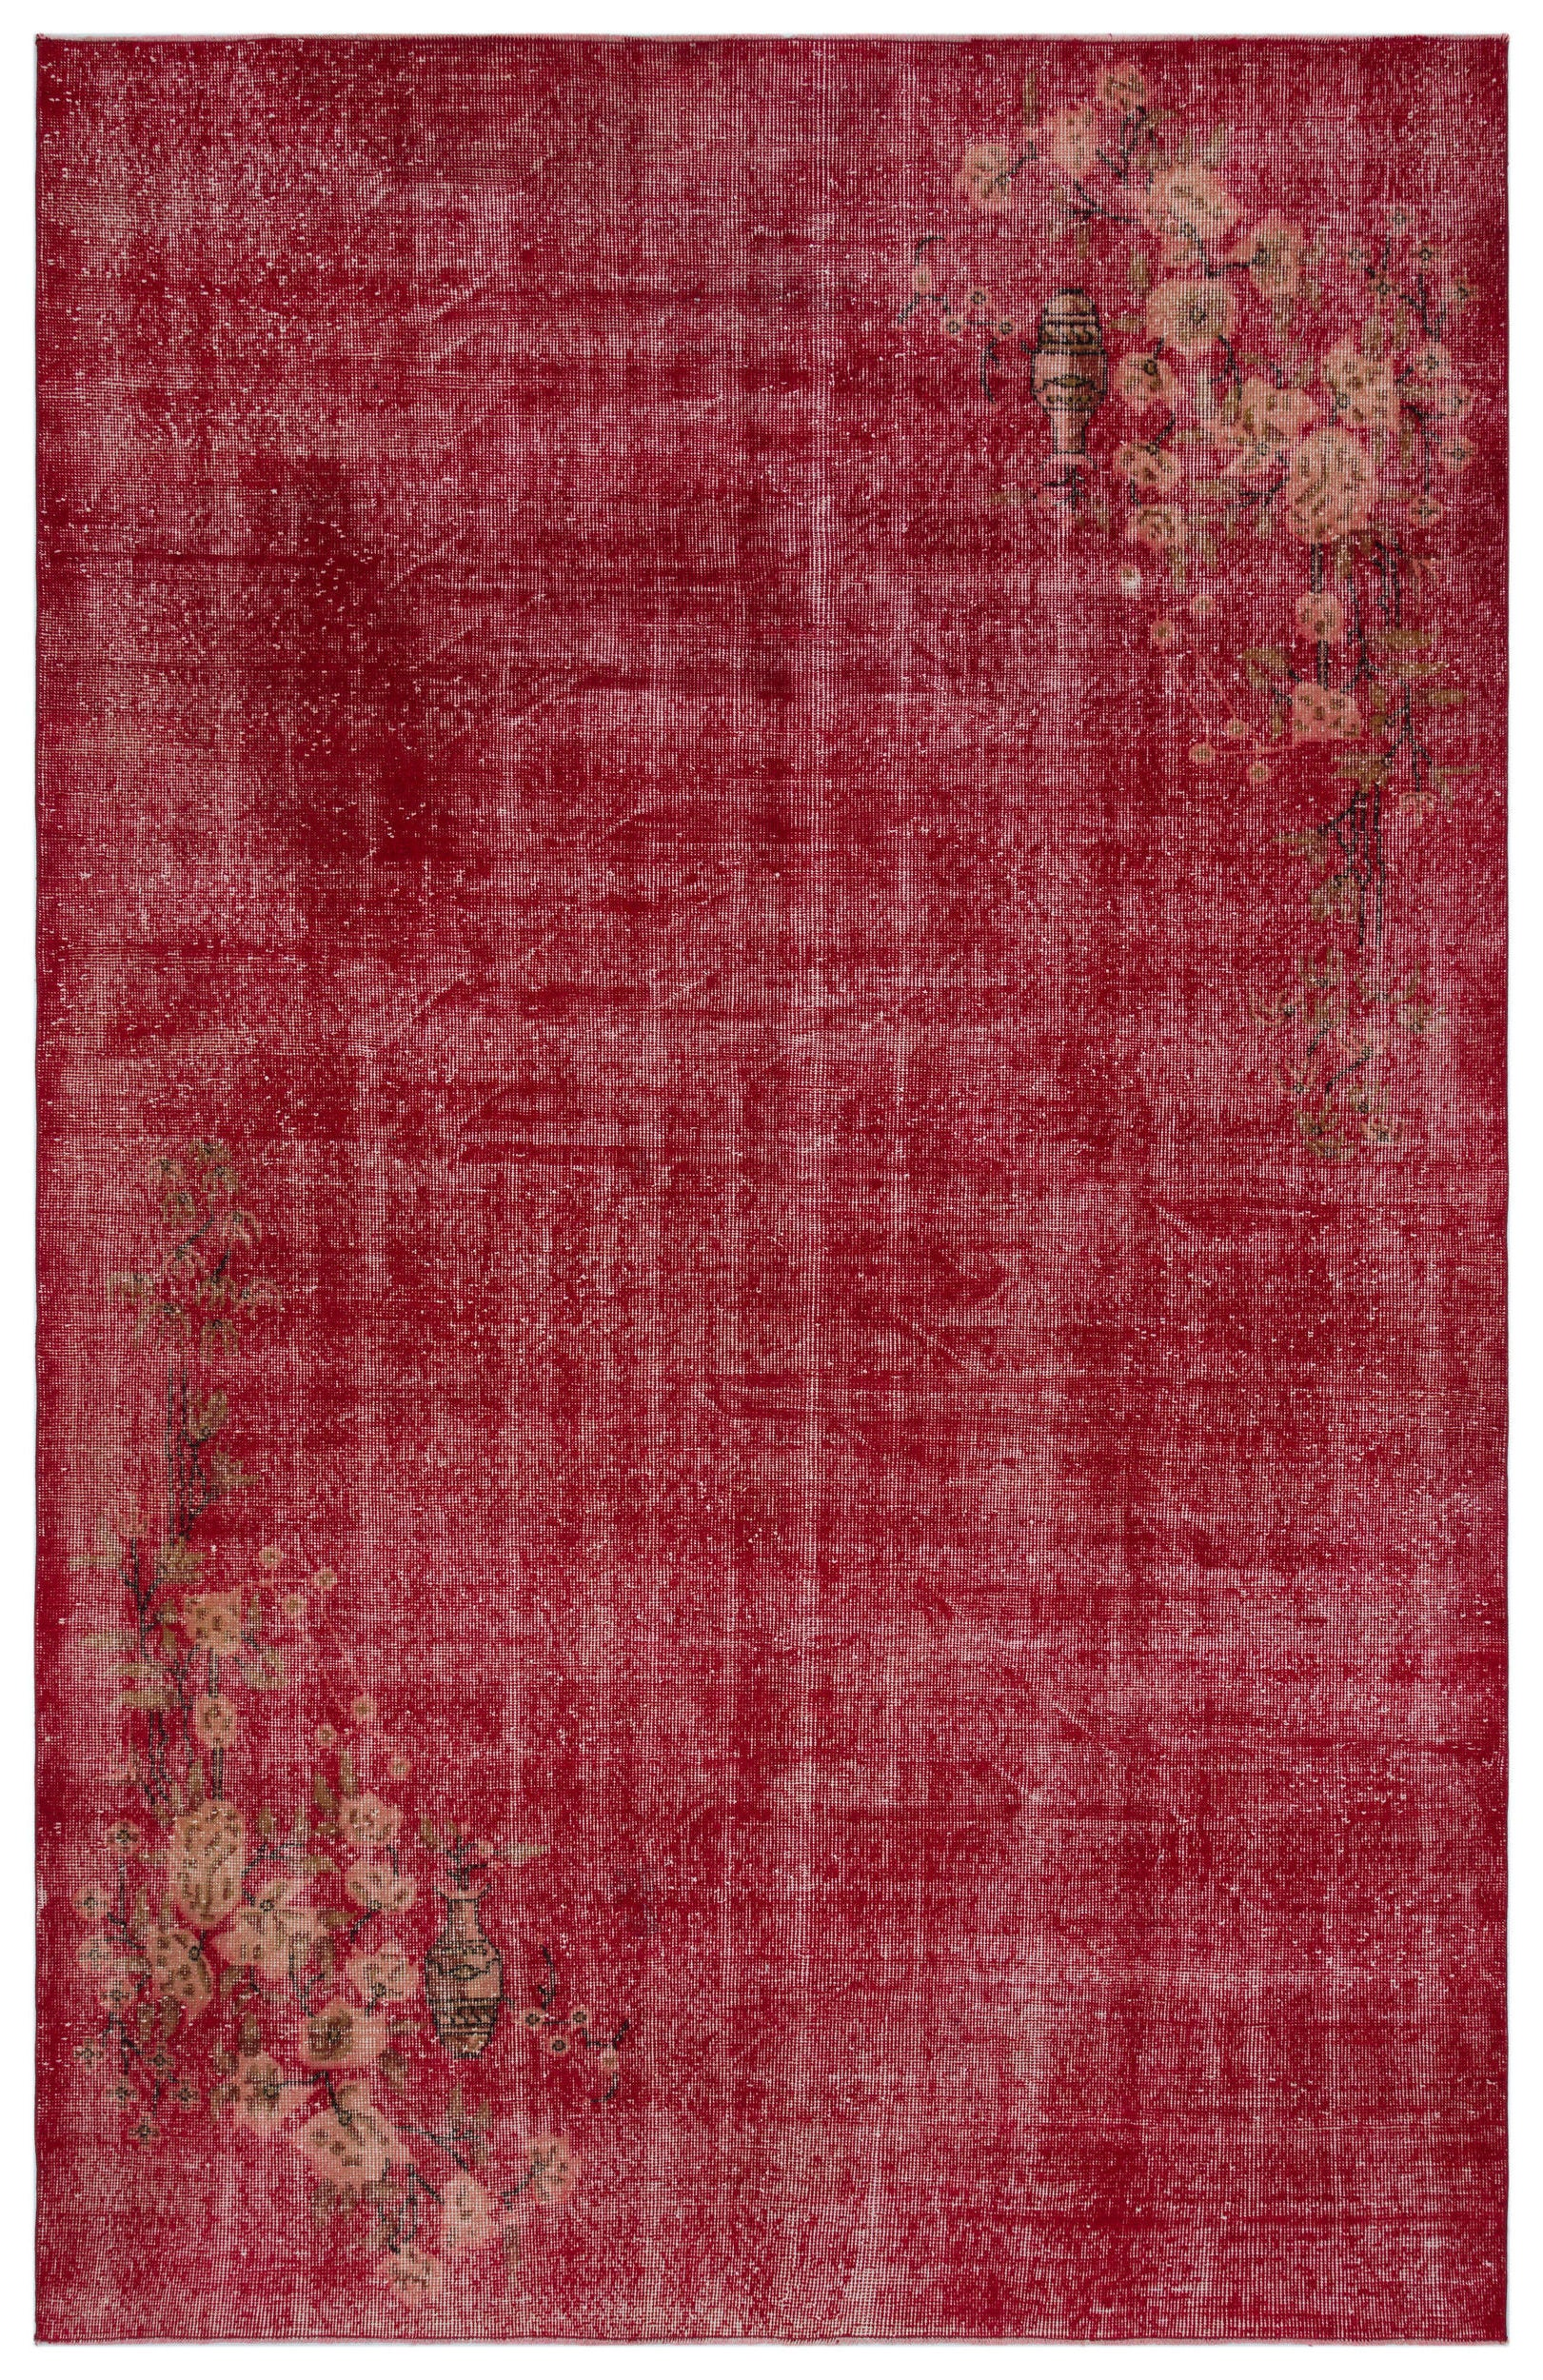 Naturel Over Dyed Vintage Rug 6'6'' x 9'11'' ft 197 x 303 cm